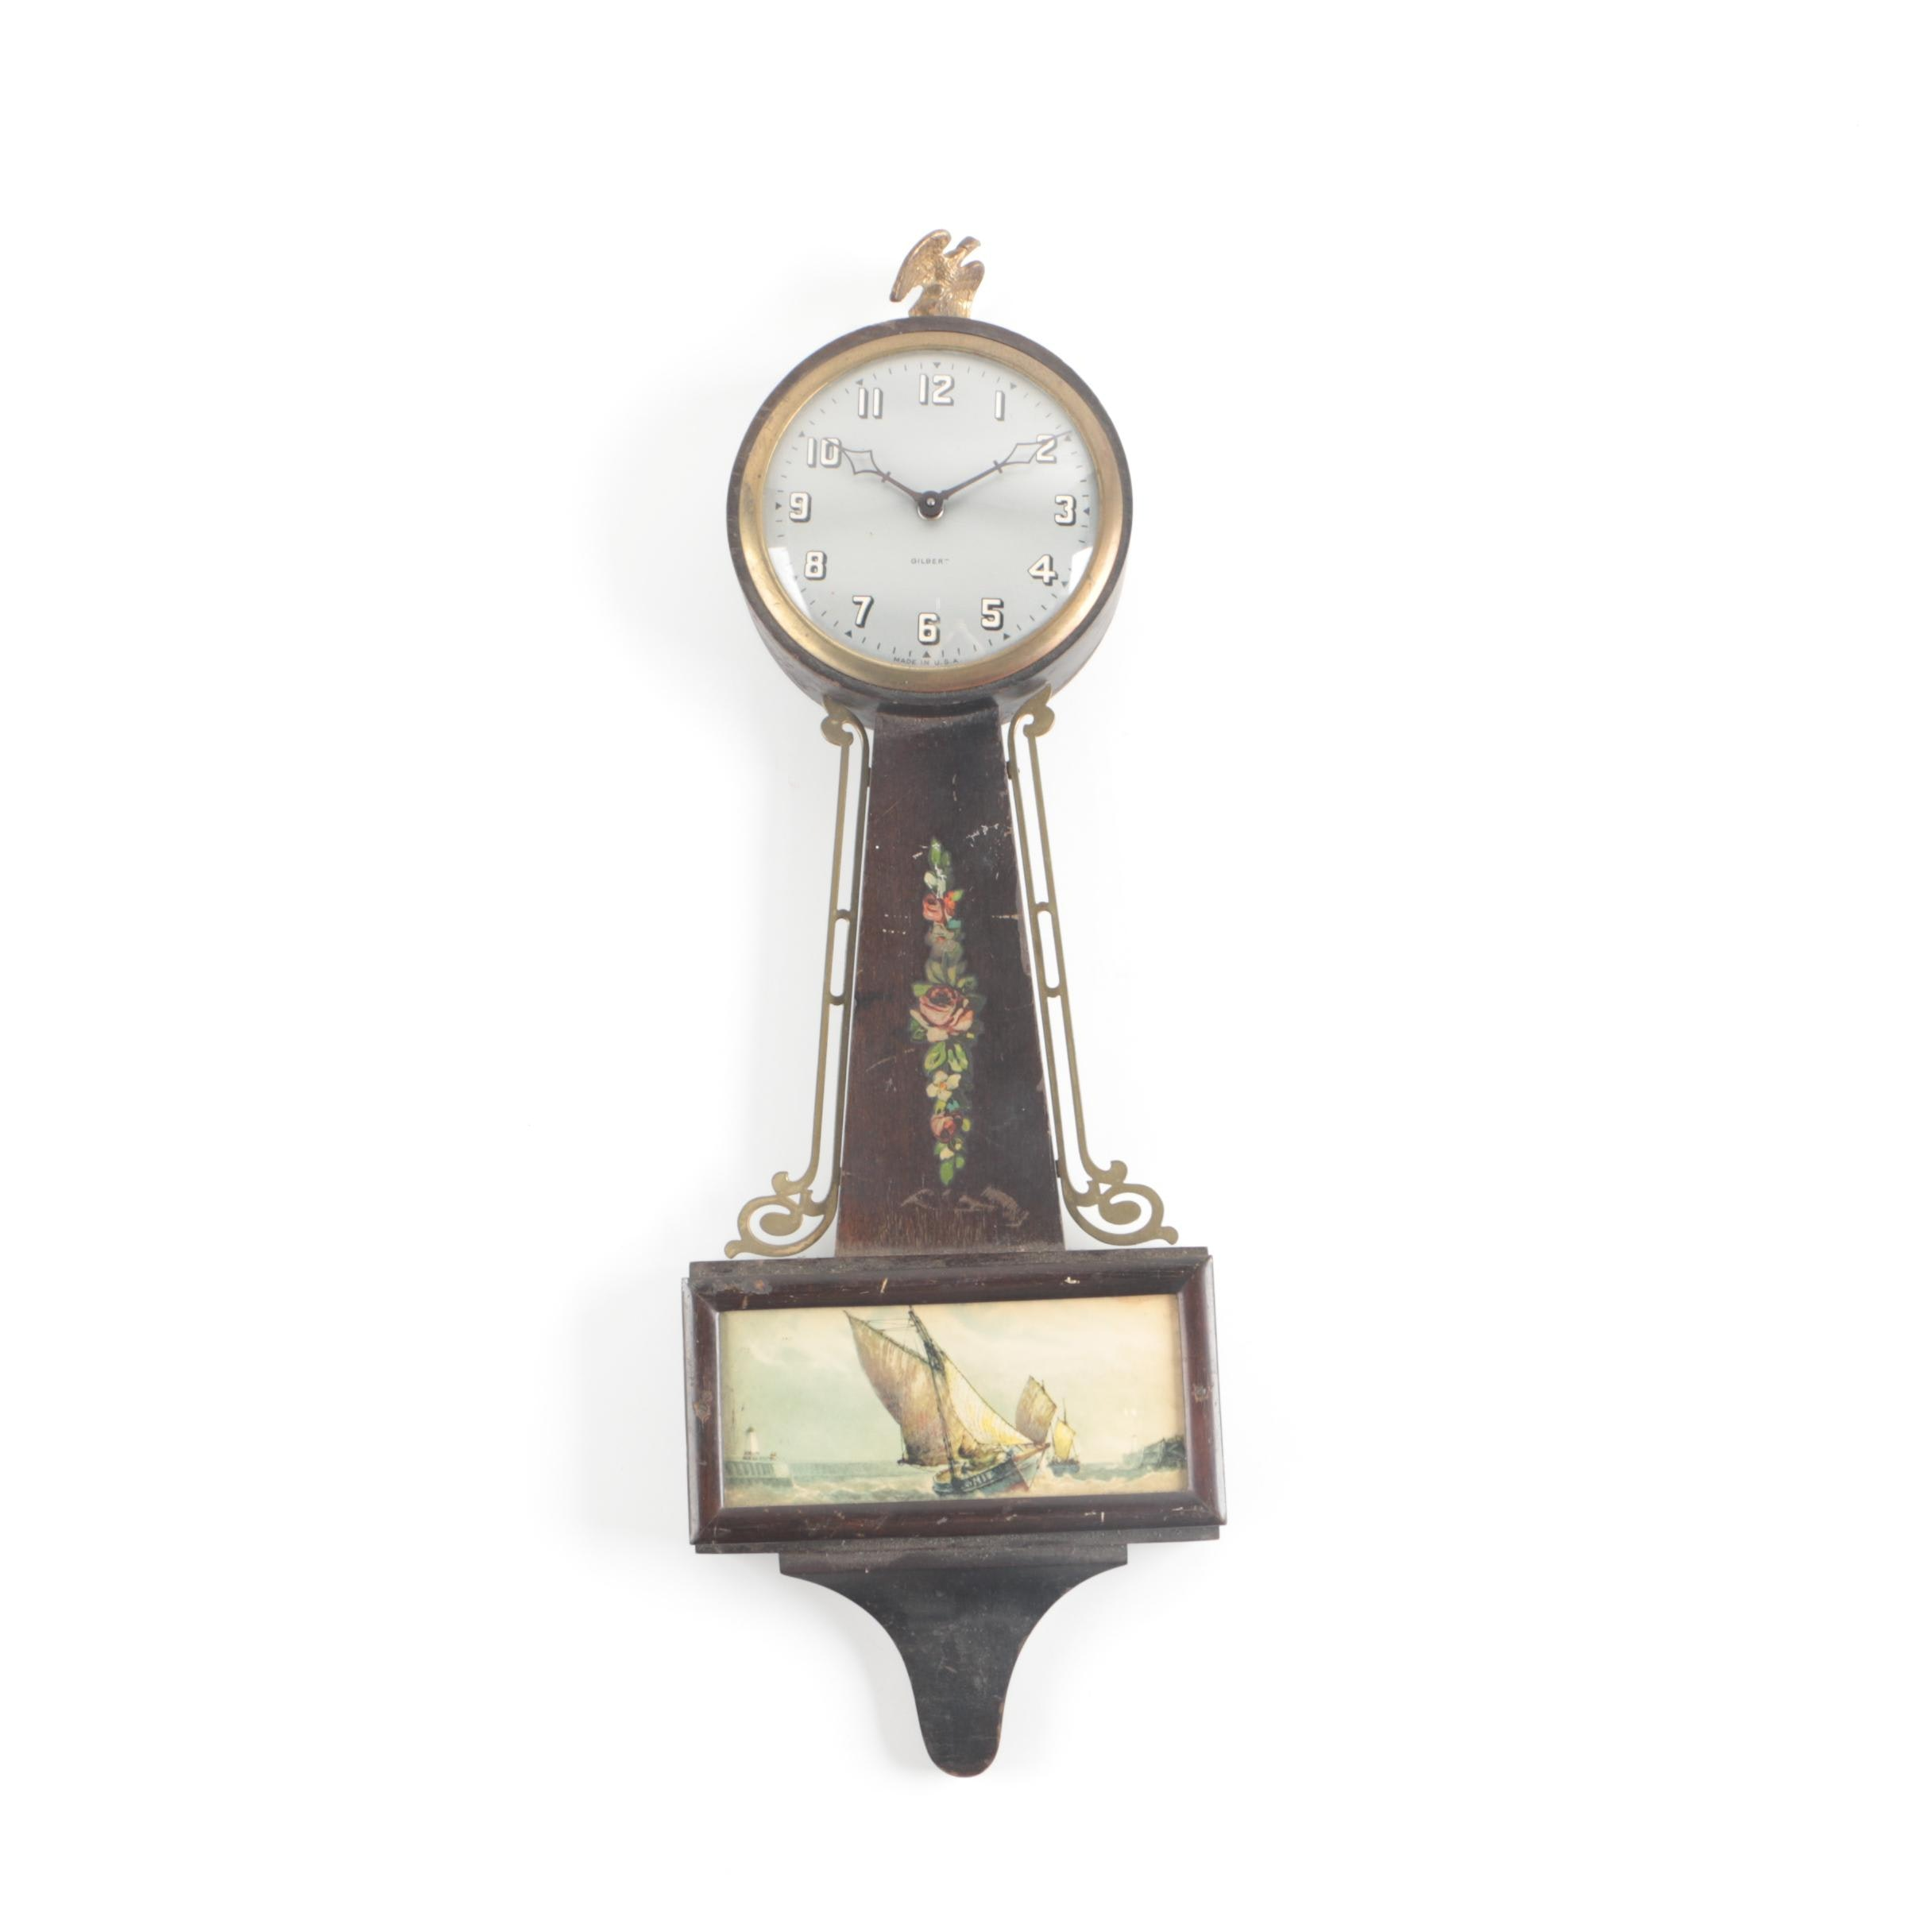 Circa 1920s Gilbert Clock Co. Scenic Banjo Wall Clock